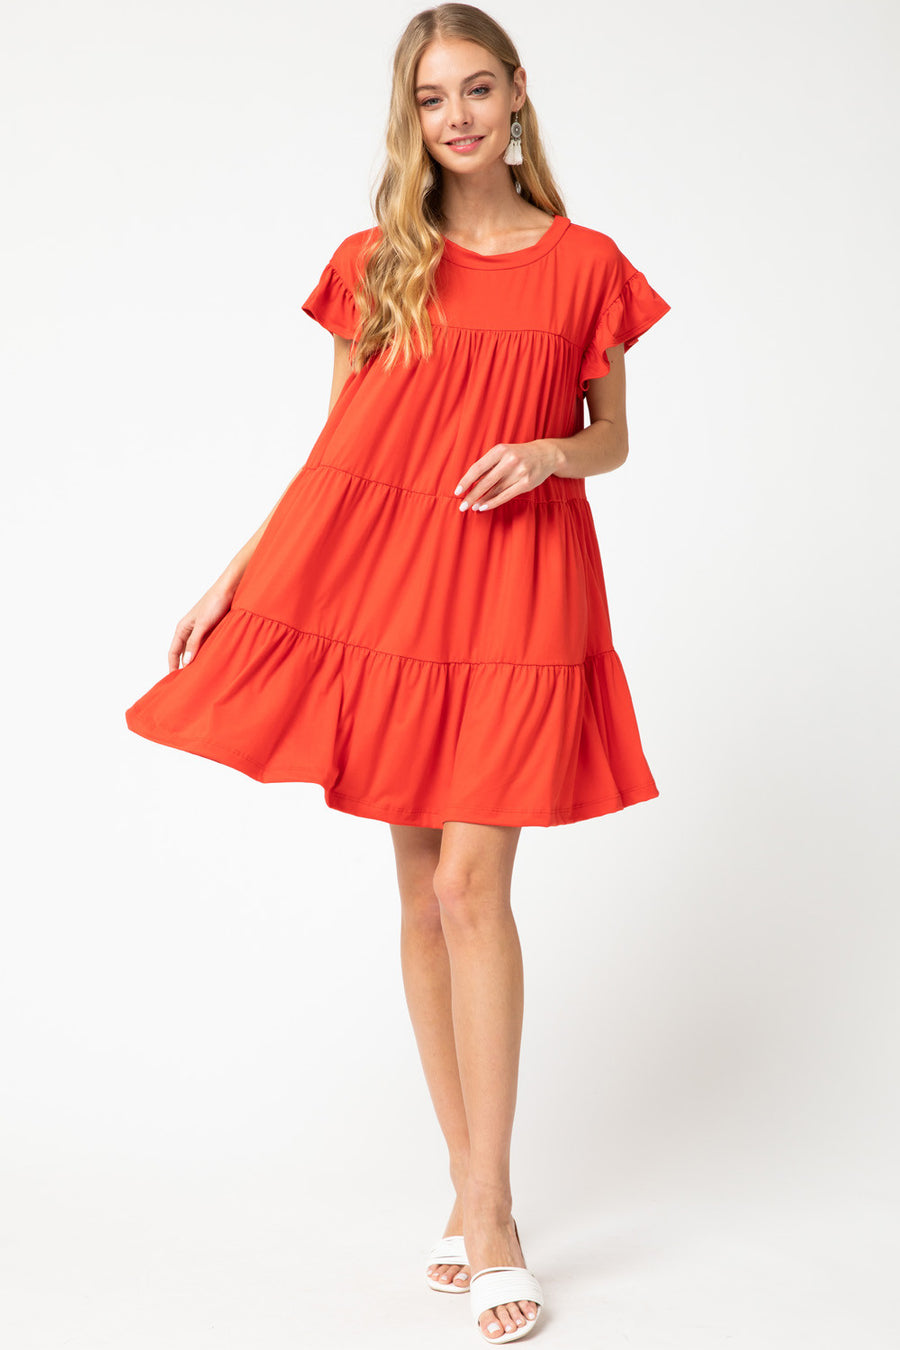 Sunny Days Are Here Tiered Dress - Tangerine